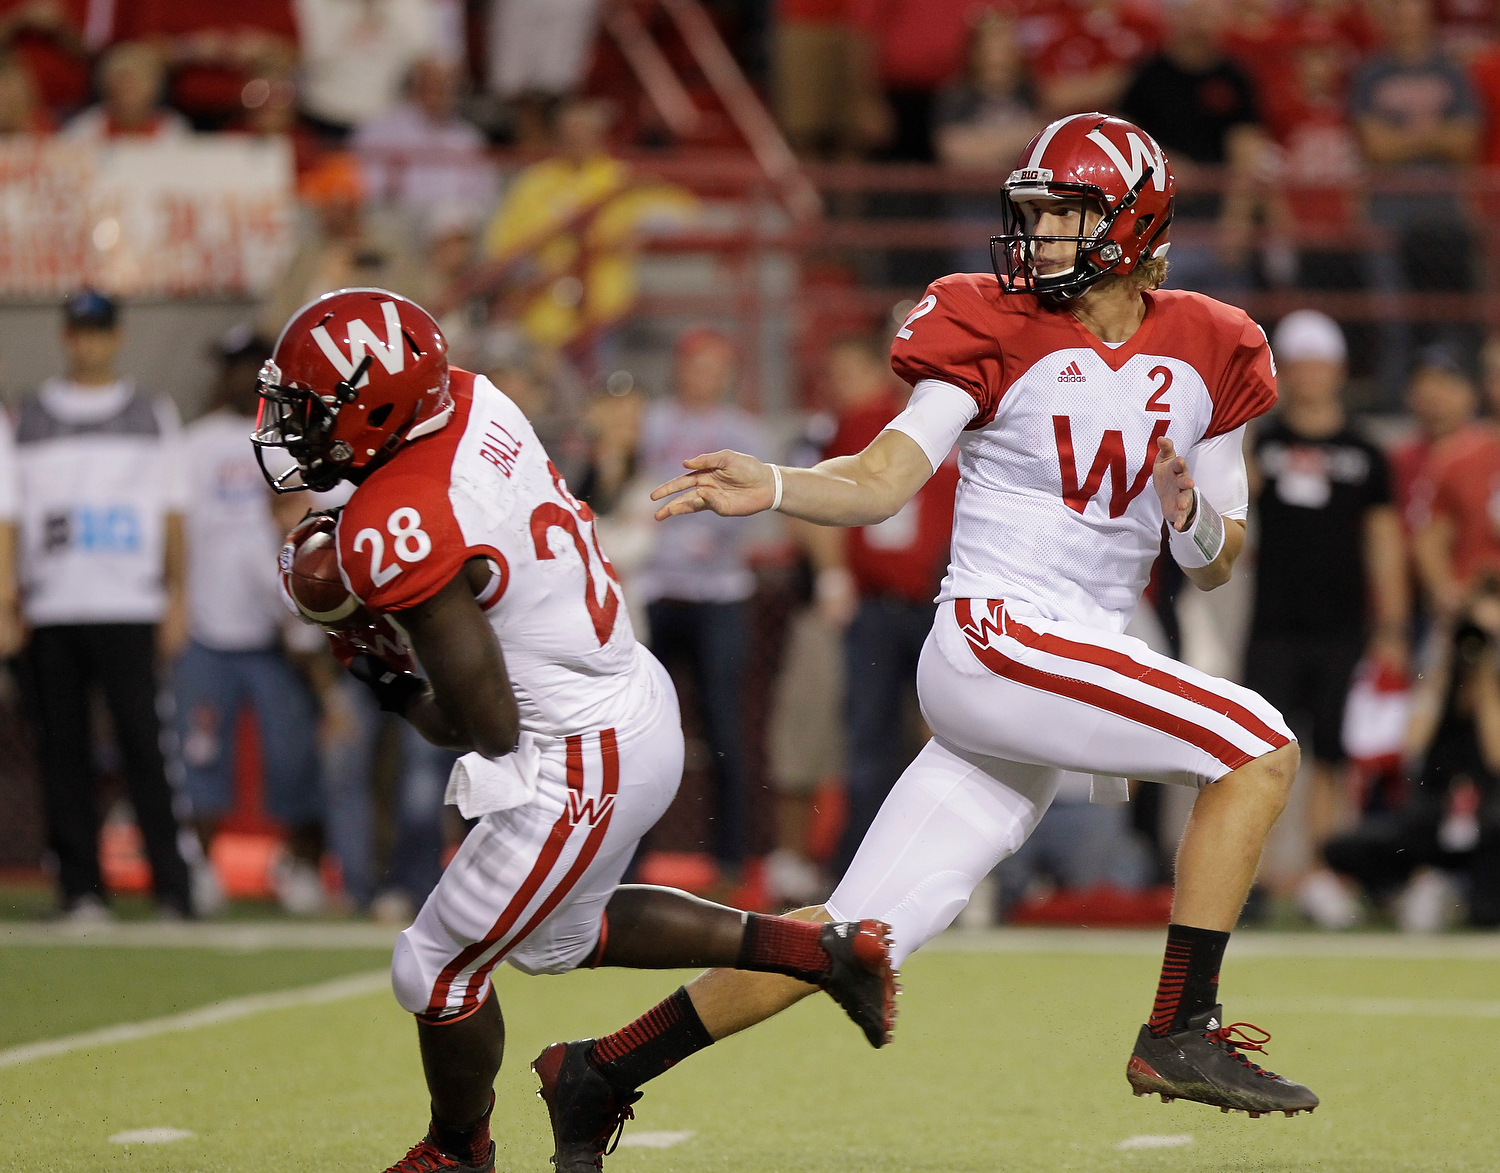 Wisconsin quarterback Joel Stave, right, hands off the ball to Montee Ball during an NCAA college football game between Nebraska and Wisconsin, in Lincoln, Neb., Saturday, Sept. 29, 2012. Nebraska ran four straight scoring drives against a tiring Wisconsin defense in the second half to lead No. 22 Nebraska's comeback from a 17-point deficit to defeat the Badgers 30-27. (AP Photo/Nati Harnik)